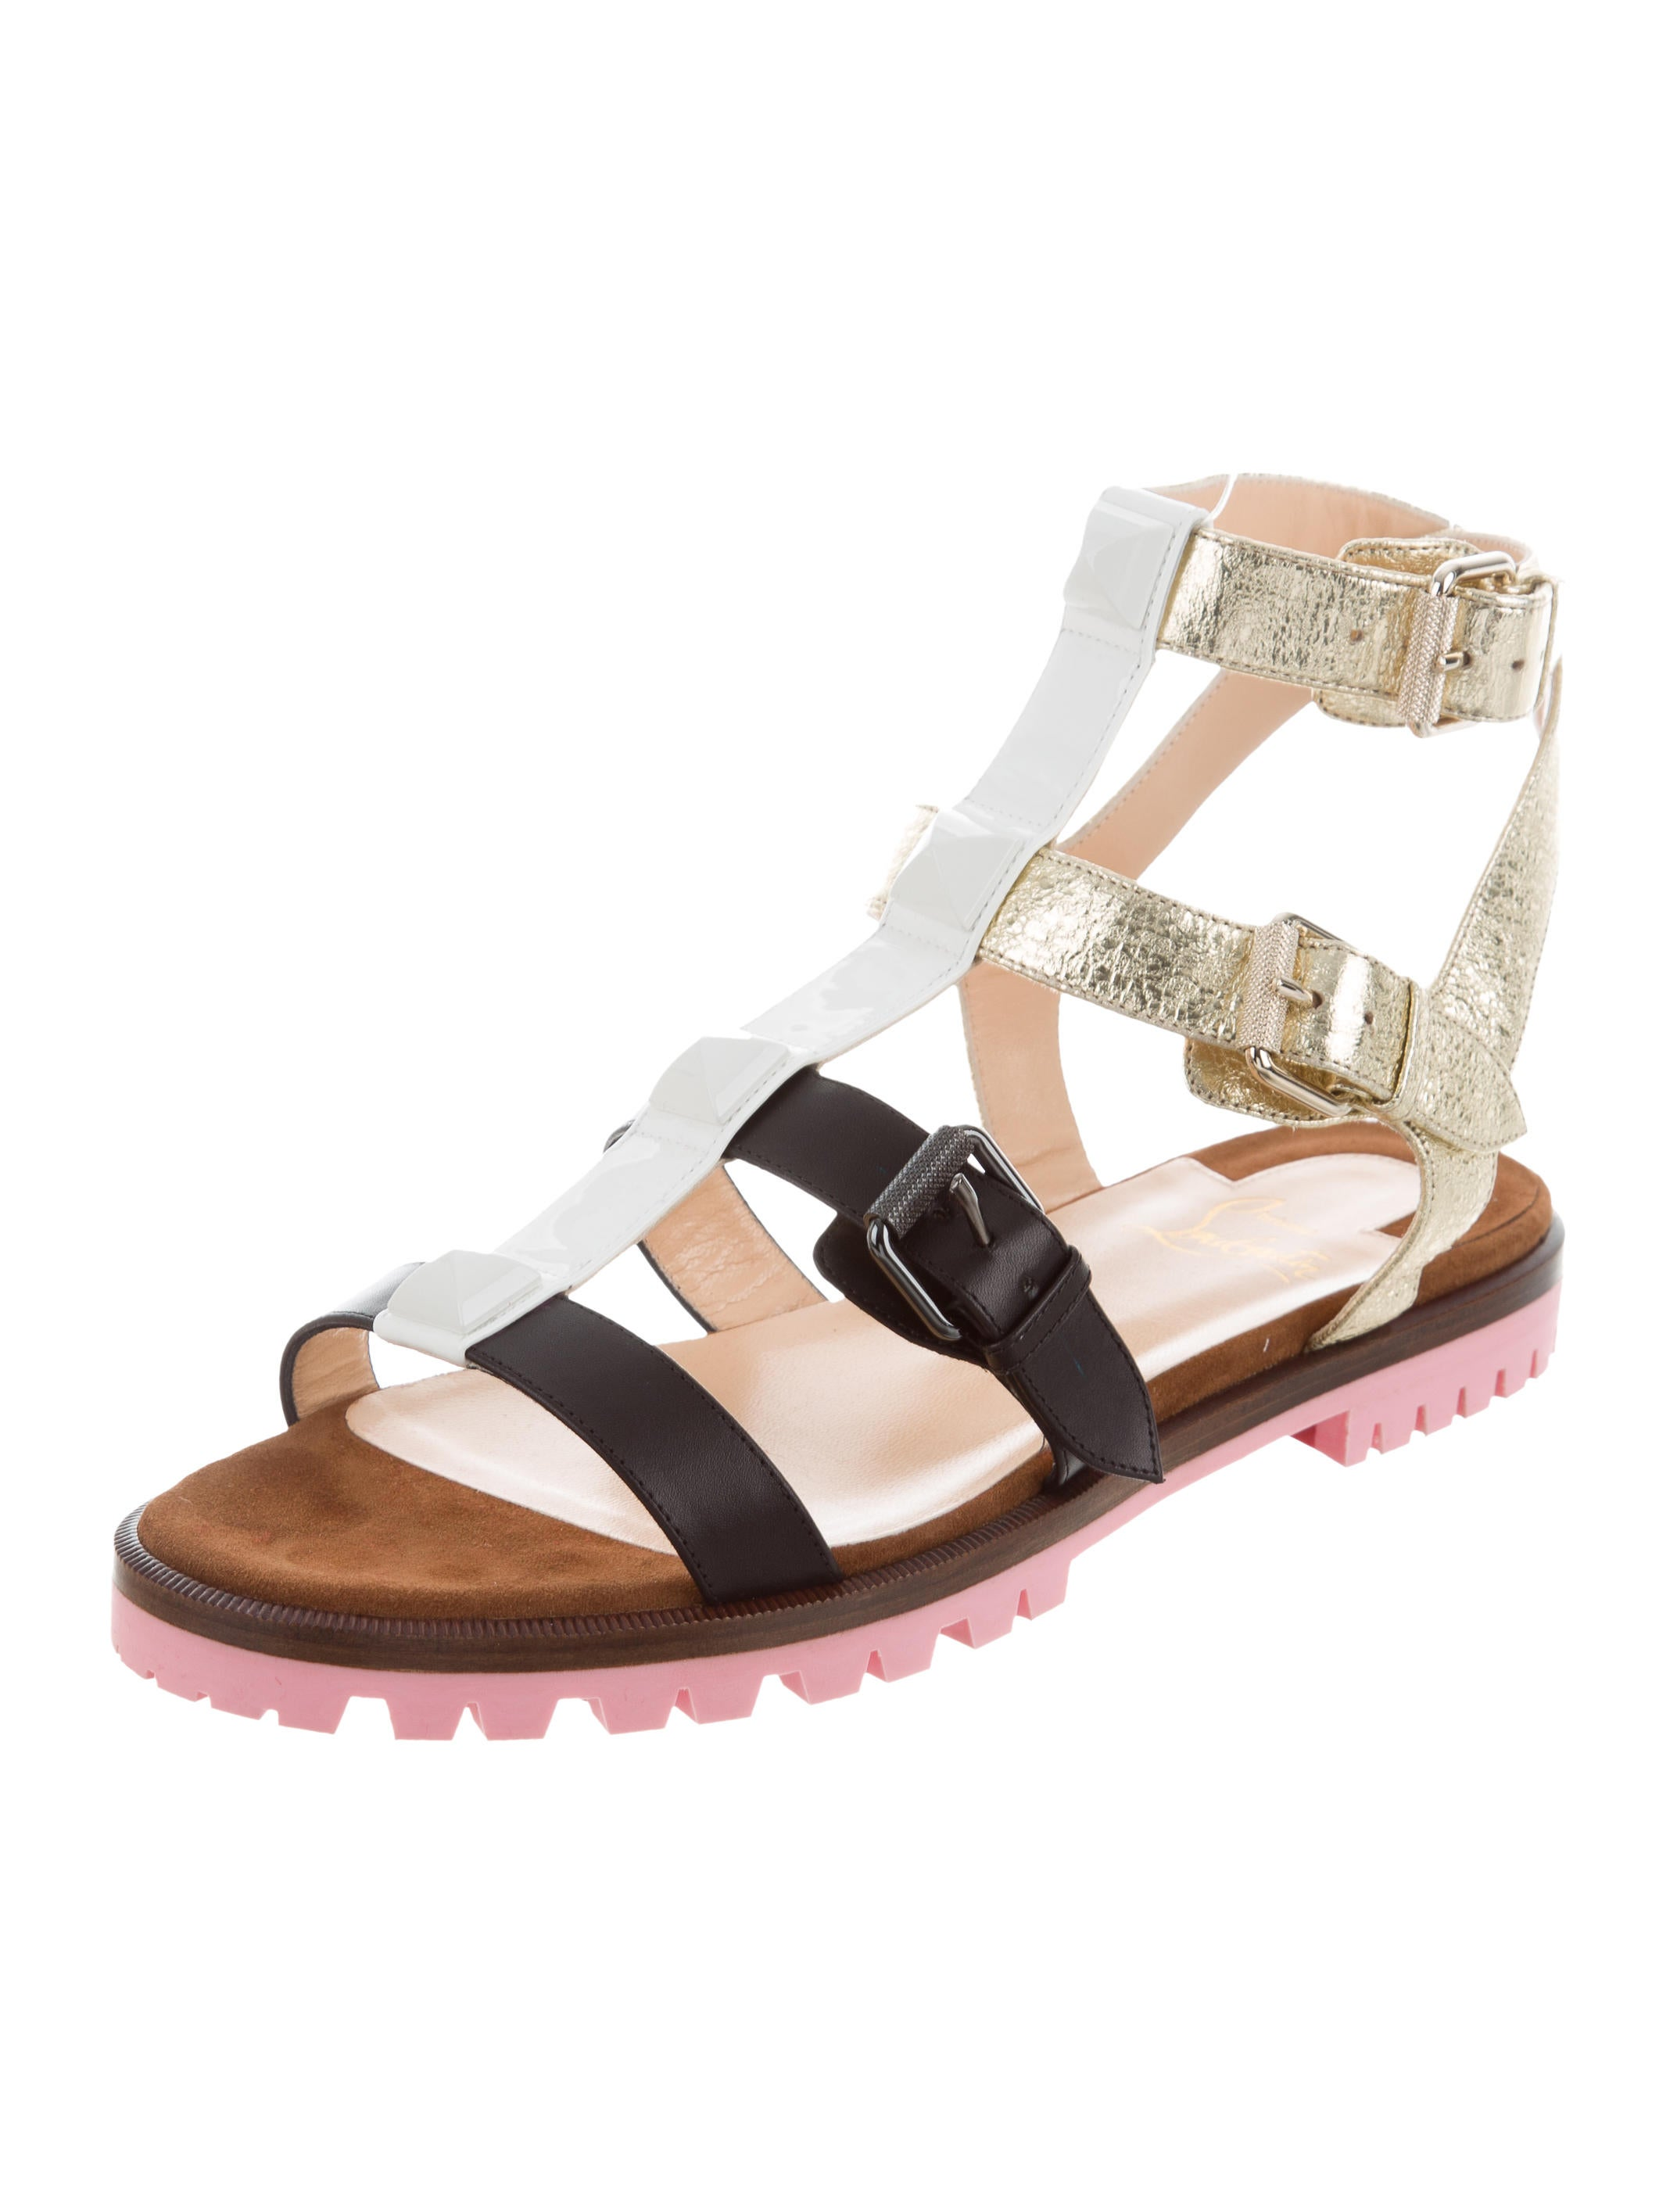 Christian Louboutin Rocknbuckle Multistrap Sandals w/ Tags outlet discount from china sale online outlet order online buy authentic online ldKB8g